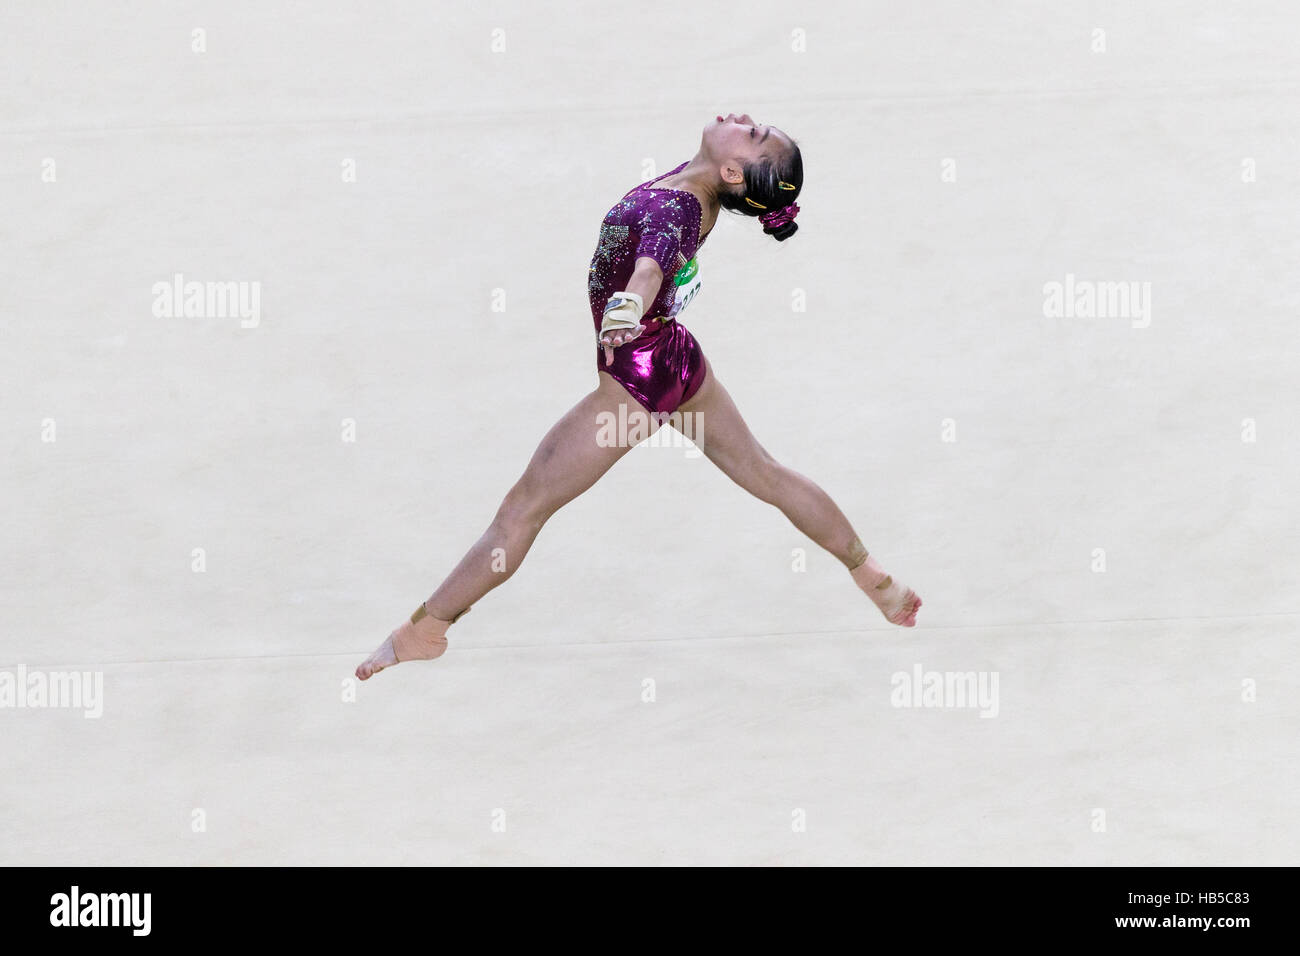 Rio de Janeiro, Brazil. 9 August 2016.  Chunsong Shang (CHN) performs the floor exercise dring team competition - Stock Image